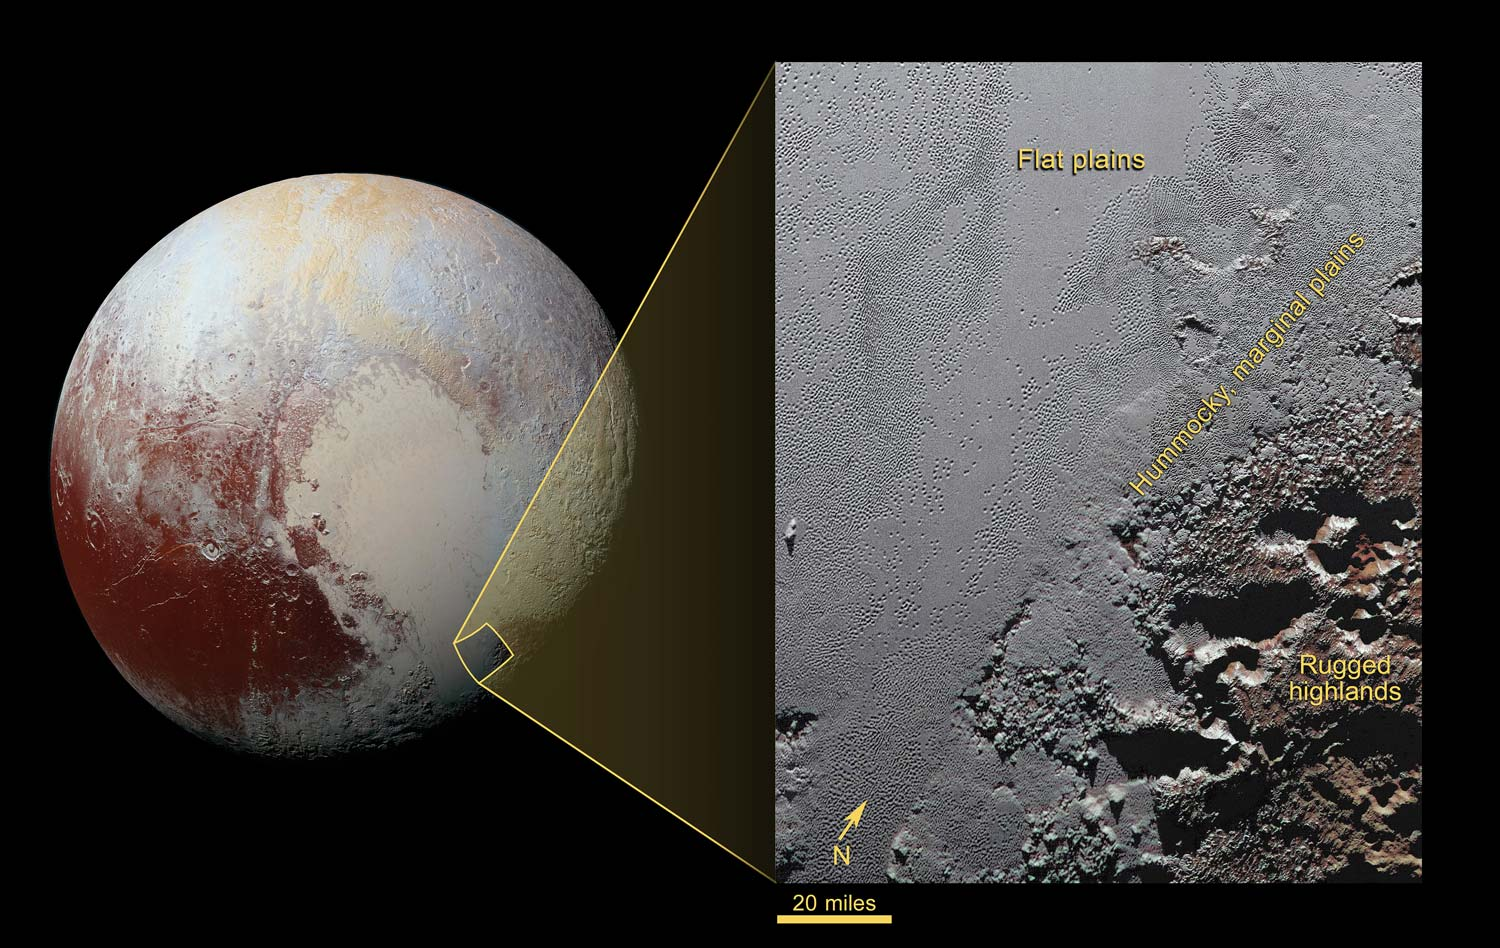 Pluto's surface between Sputnik Planum and Krun Macula